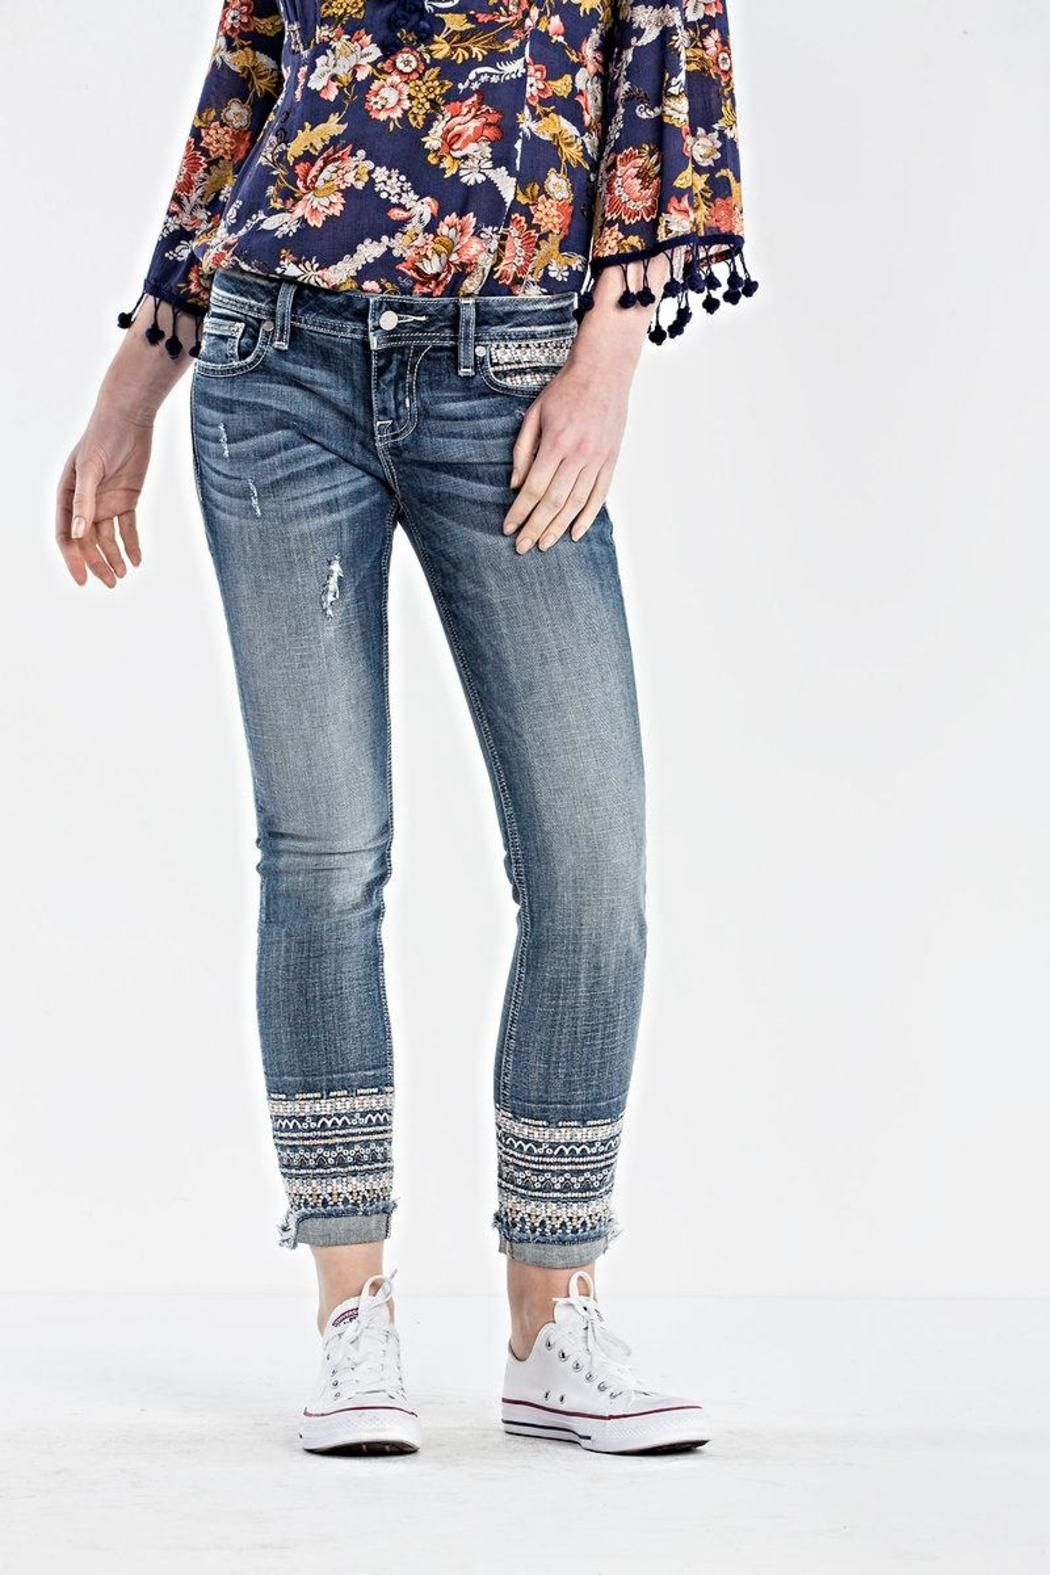 aa5aeac7a2ce95 Flaunt your bohemian style in a pair of ankle skinny jeans with embroidery  around the bottom